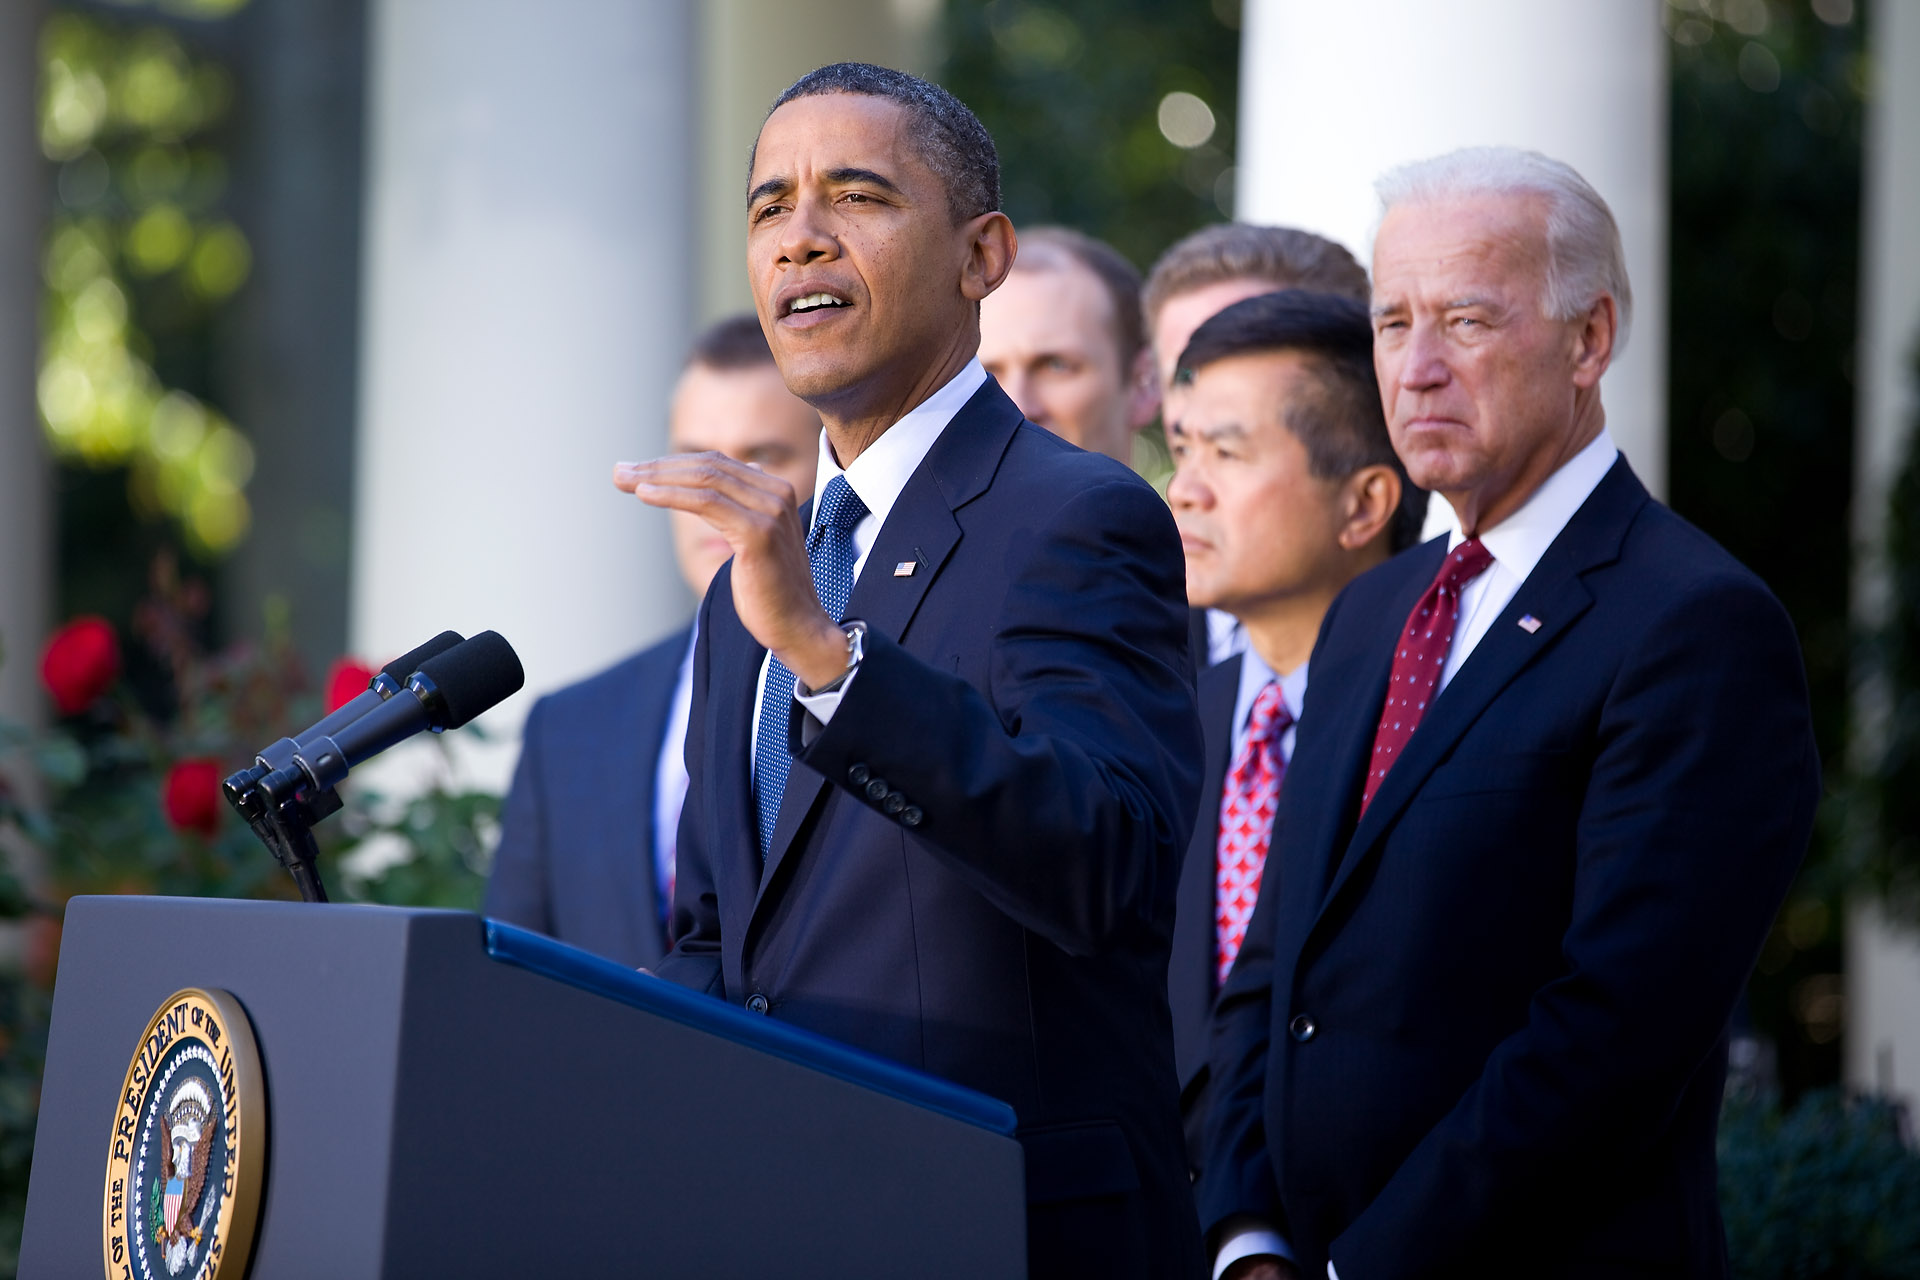 President Barack Obama Speaks on the Economy from the Rose Garden